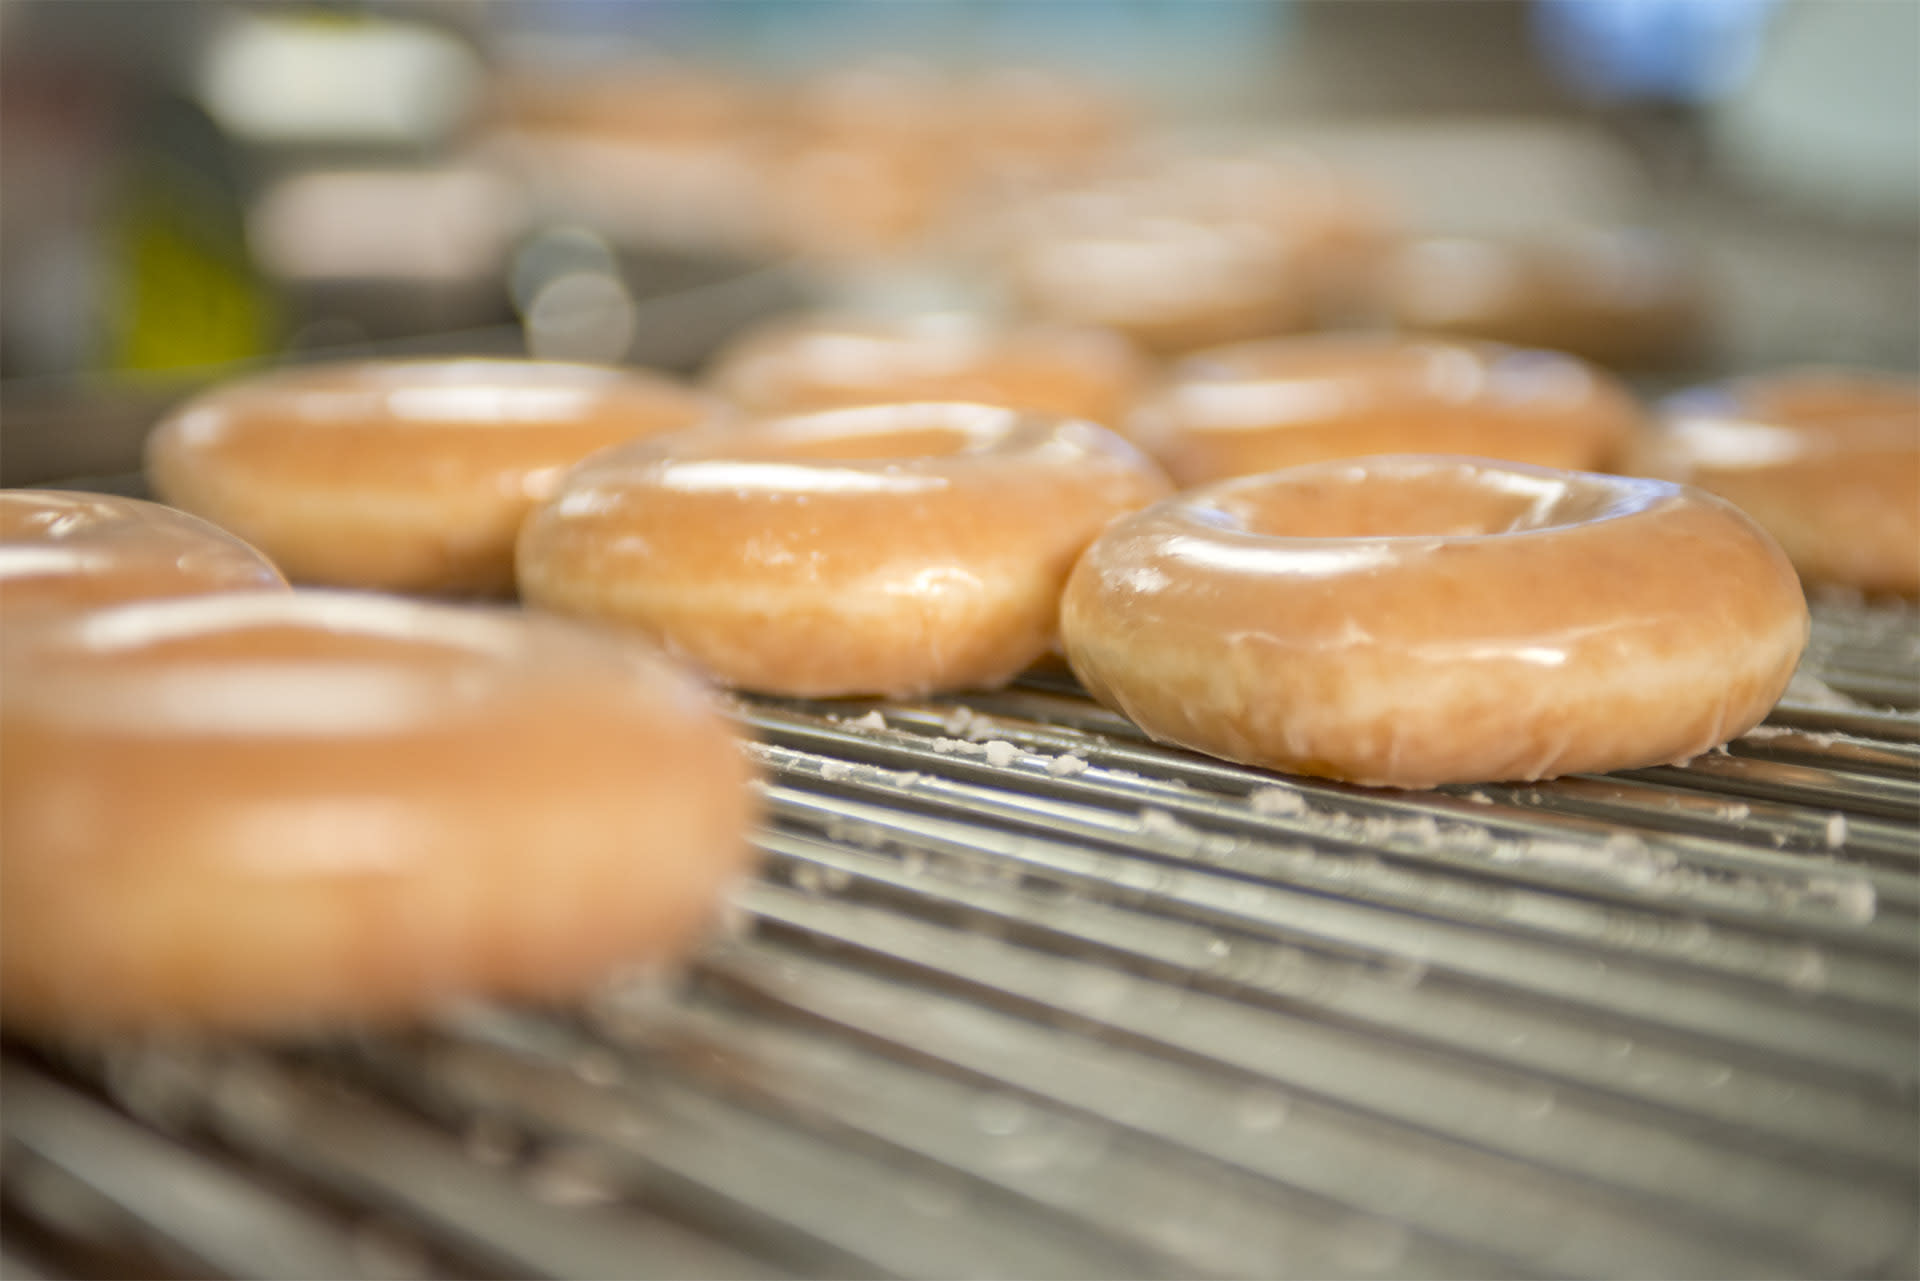 krispy kreme 3 essay Krispy kreme does not have one particular target market and are not categorized as one business type they have various tactics to appeal to various markets.